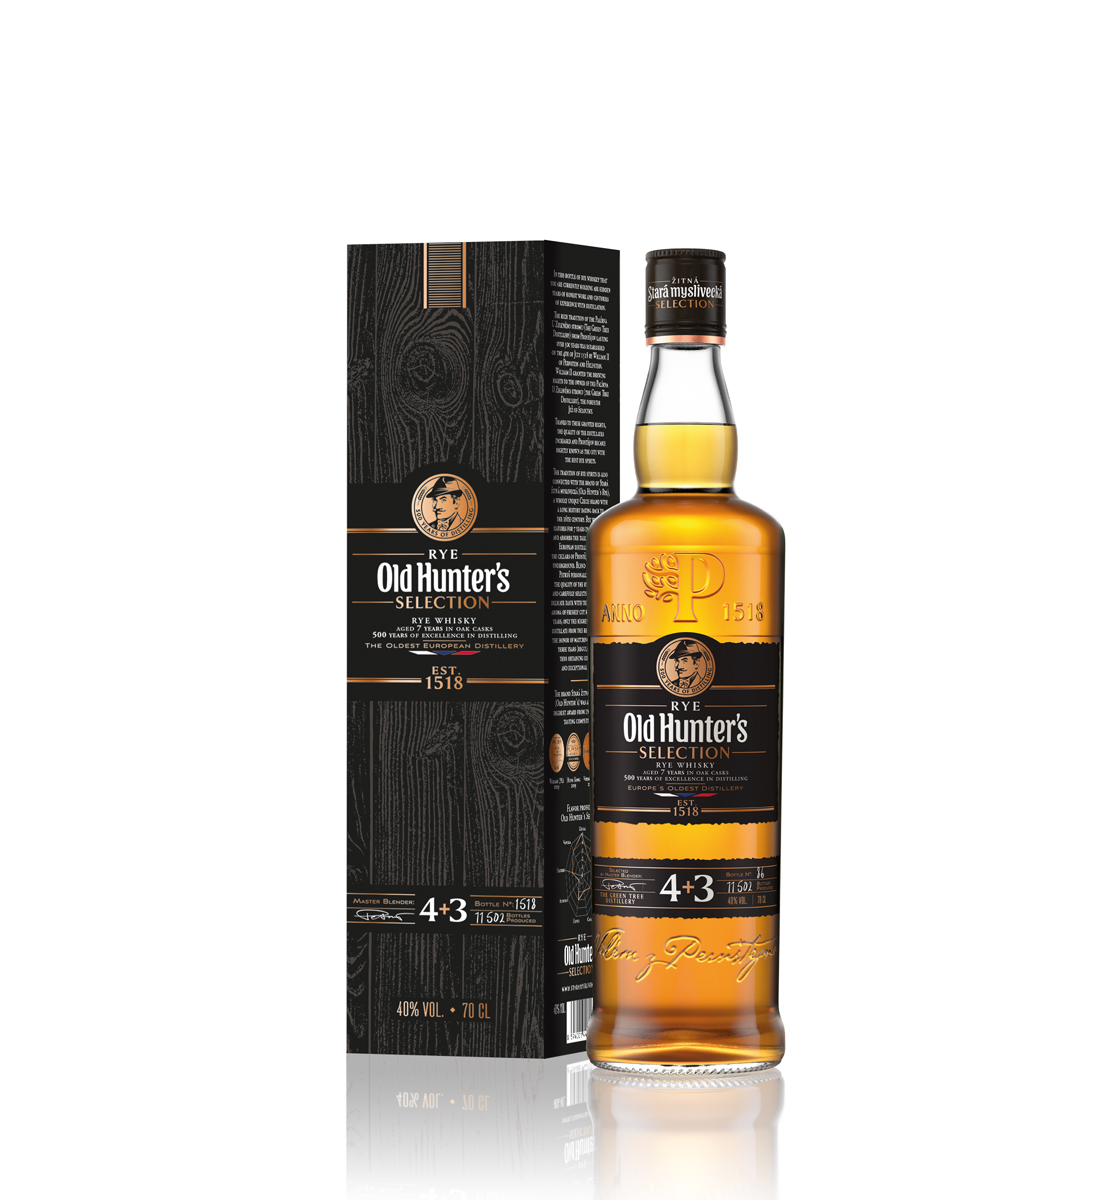 Old Hunter's Selection Rye Traditional 7 ani 0.7L